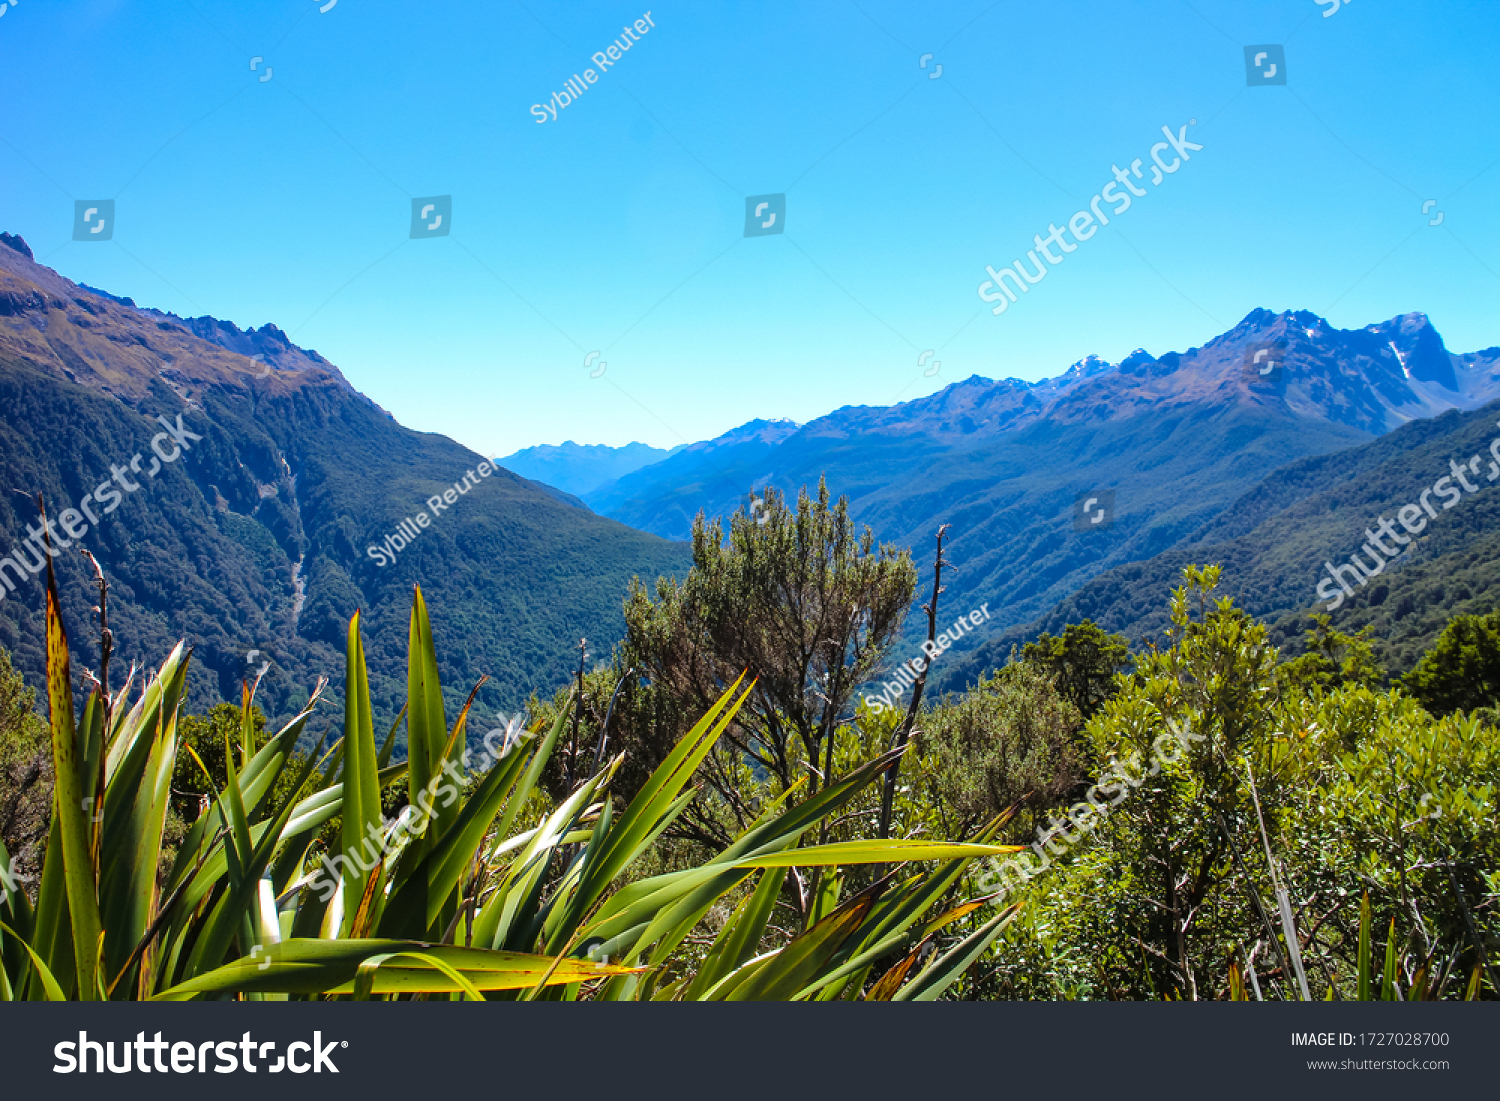 Stunning view of Hollyford Valley from the Key Summit Track section of Routeburn Track, one of the Great Tracks on New Zealand's South Island in Fiordland National Park.